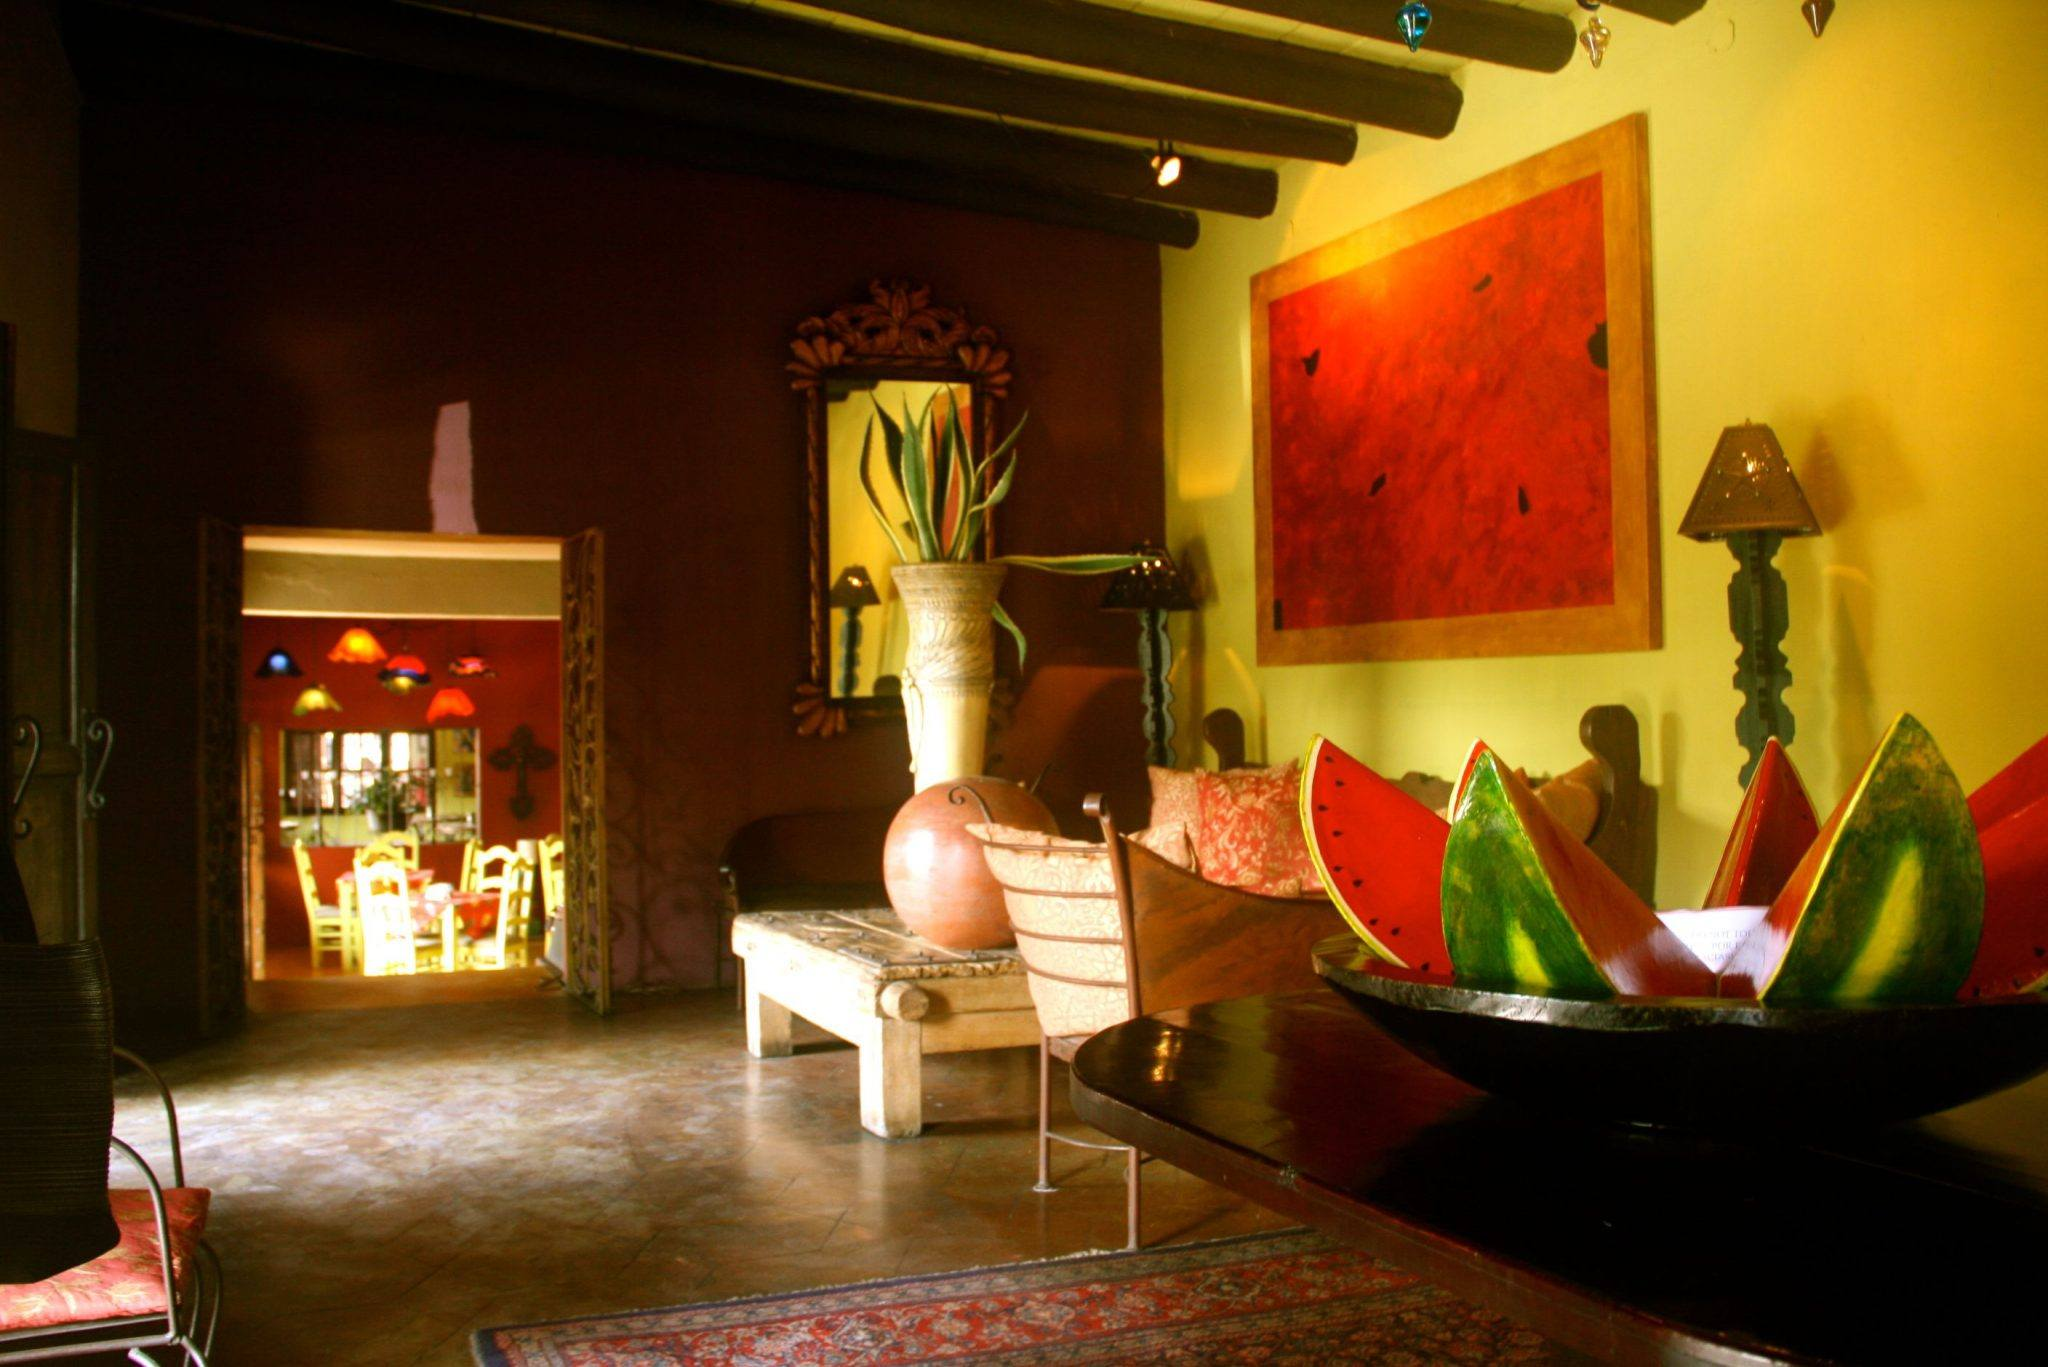 design inspiration from hotel california in todos santos